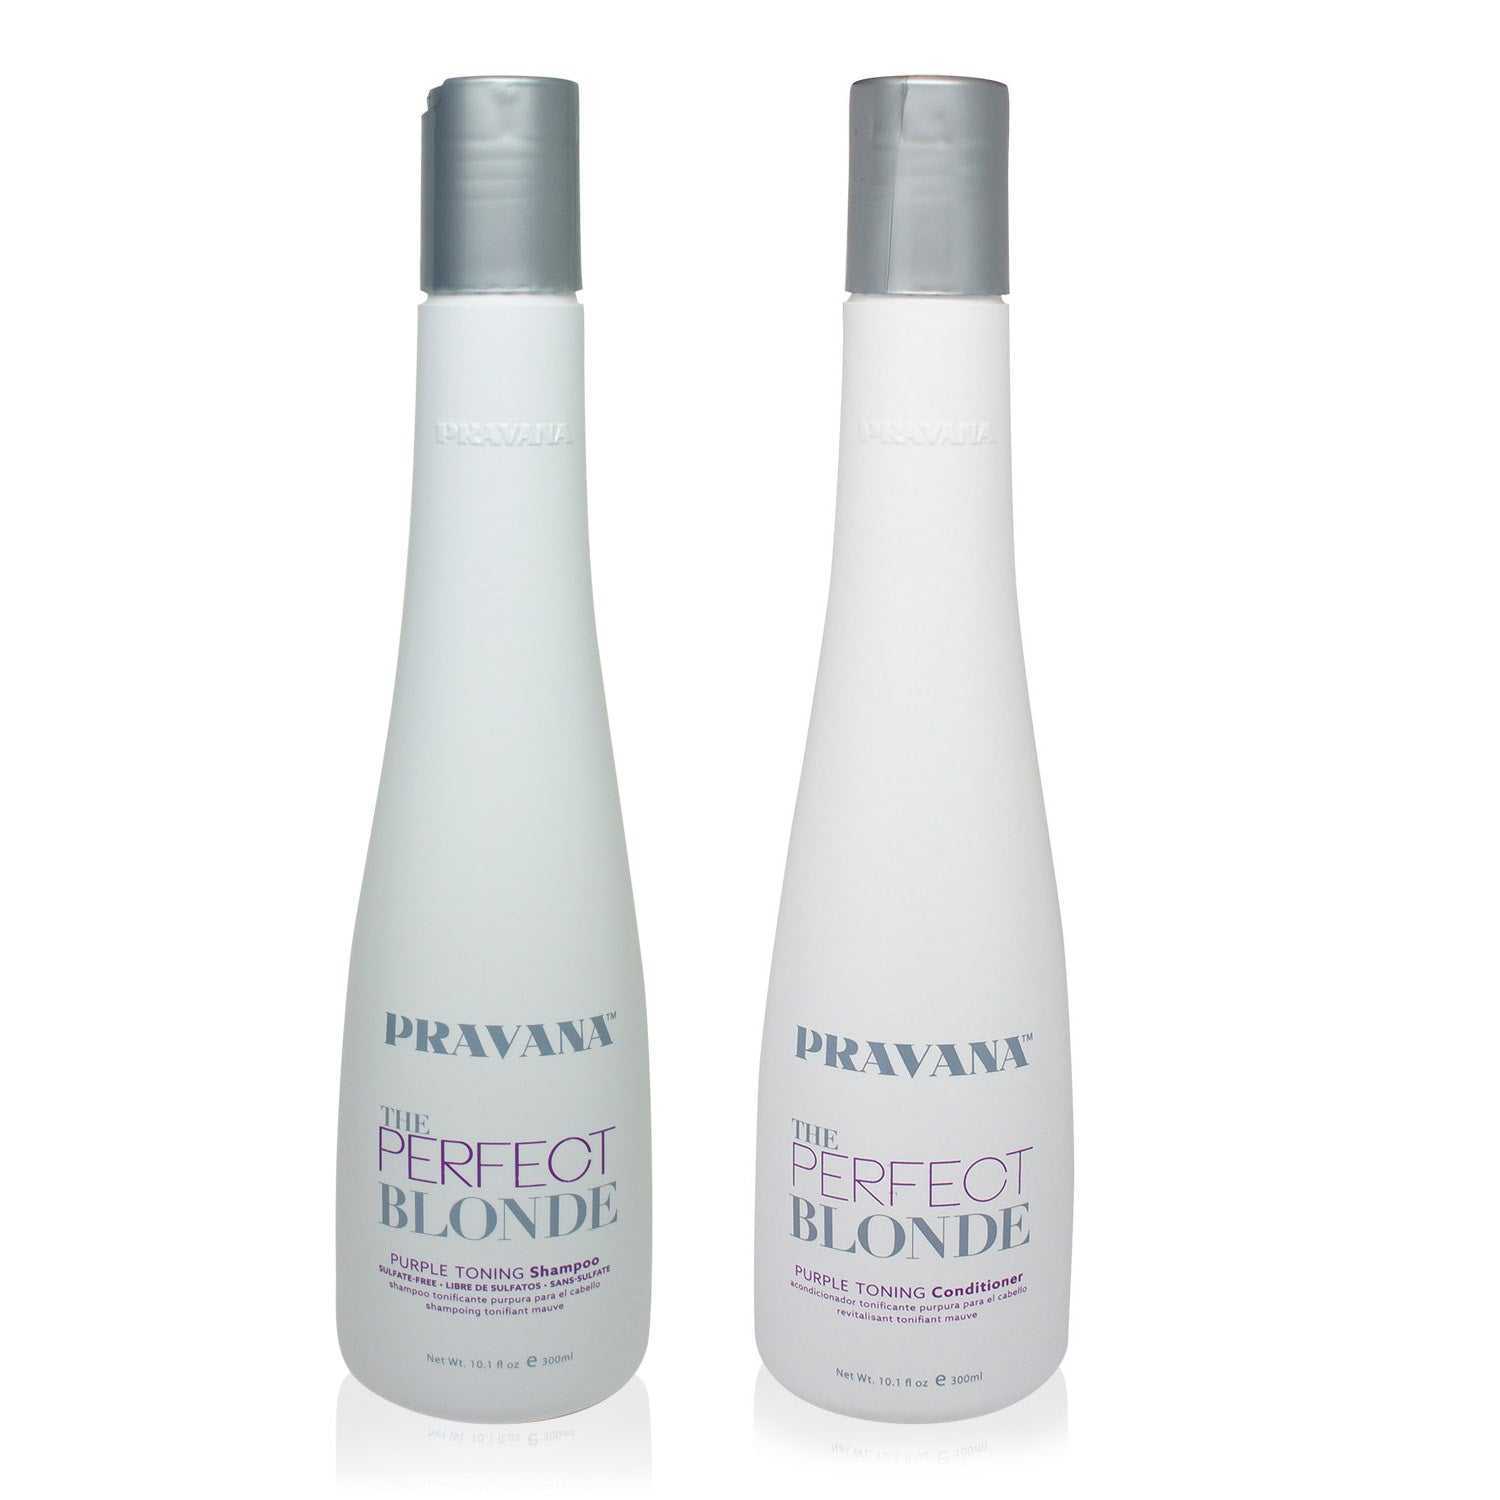 PRAVANA ~ PERFECT BLONDE SHAMPOO AND CONDITIONER 10 OZ COMBO PACK